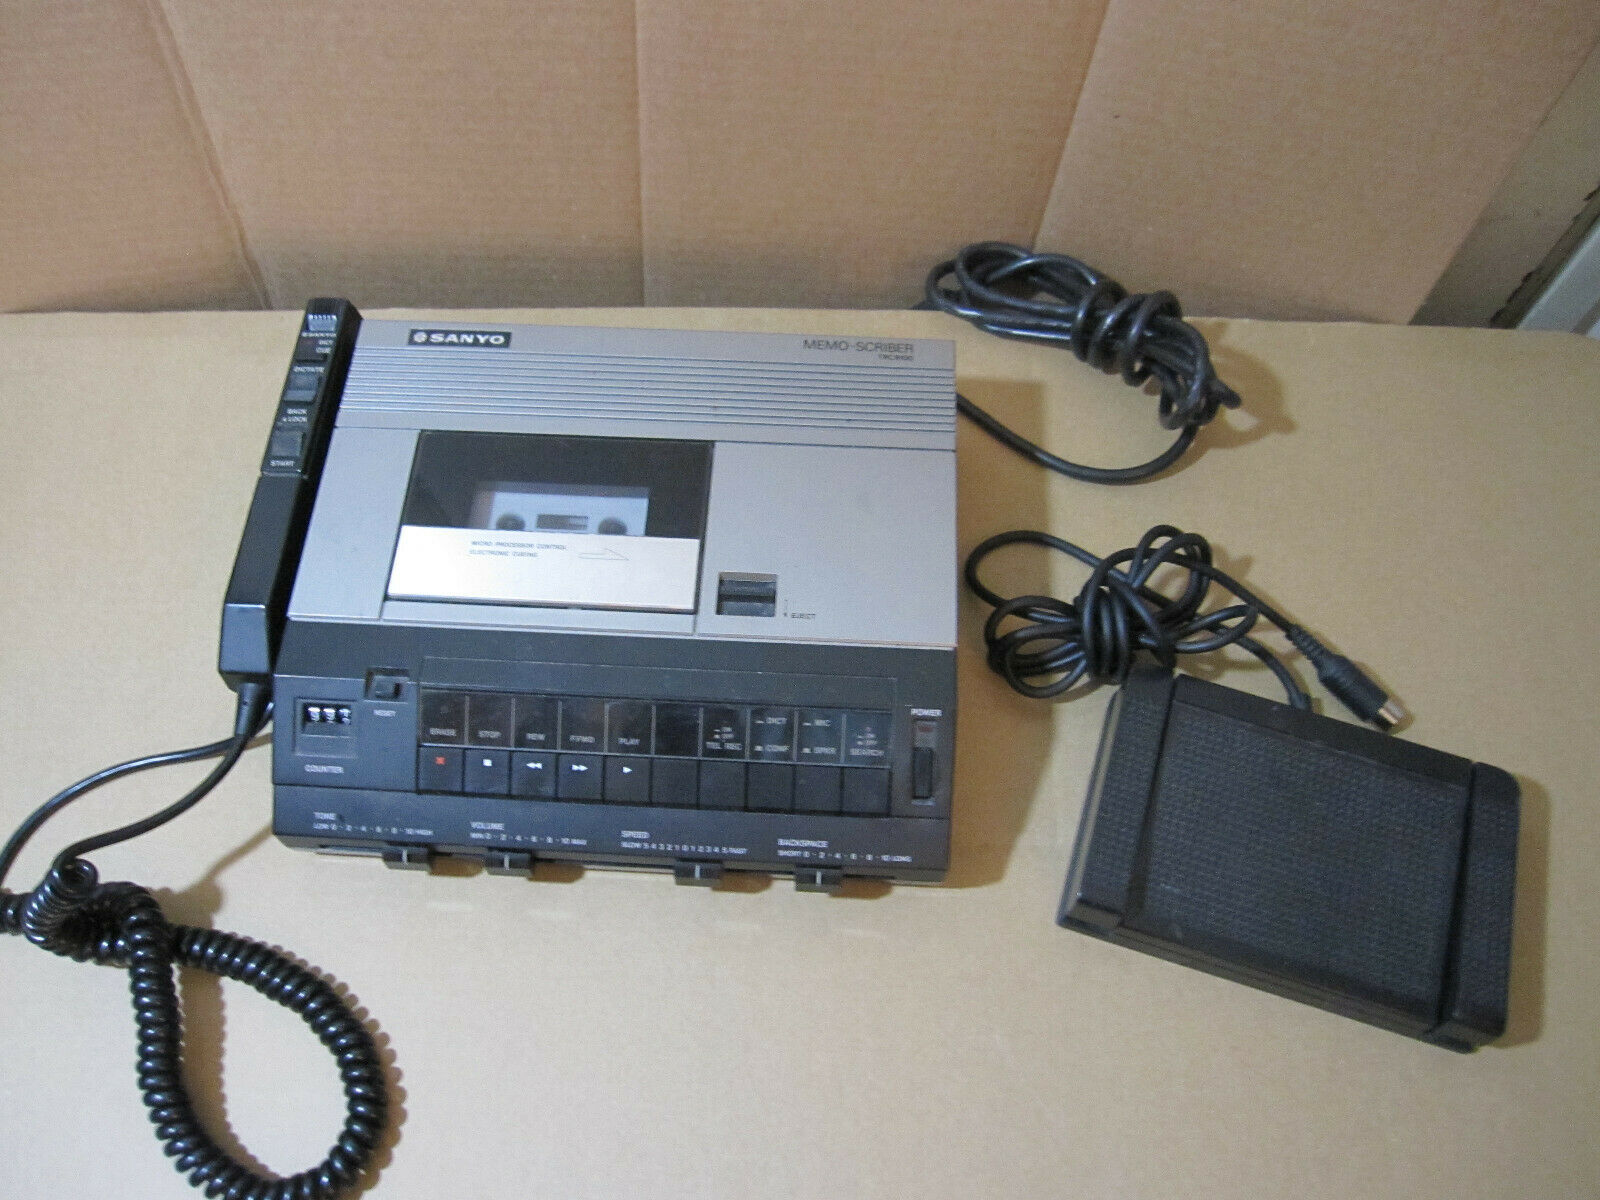 Sanyo Memo Scriber TRC-9100 Dictation Transcriber Dictaphone With Foot Control